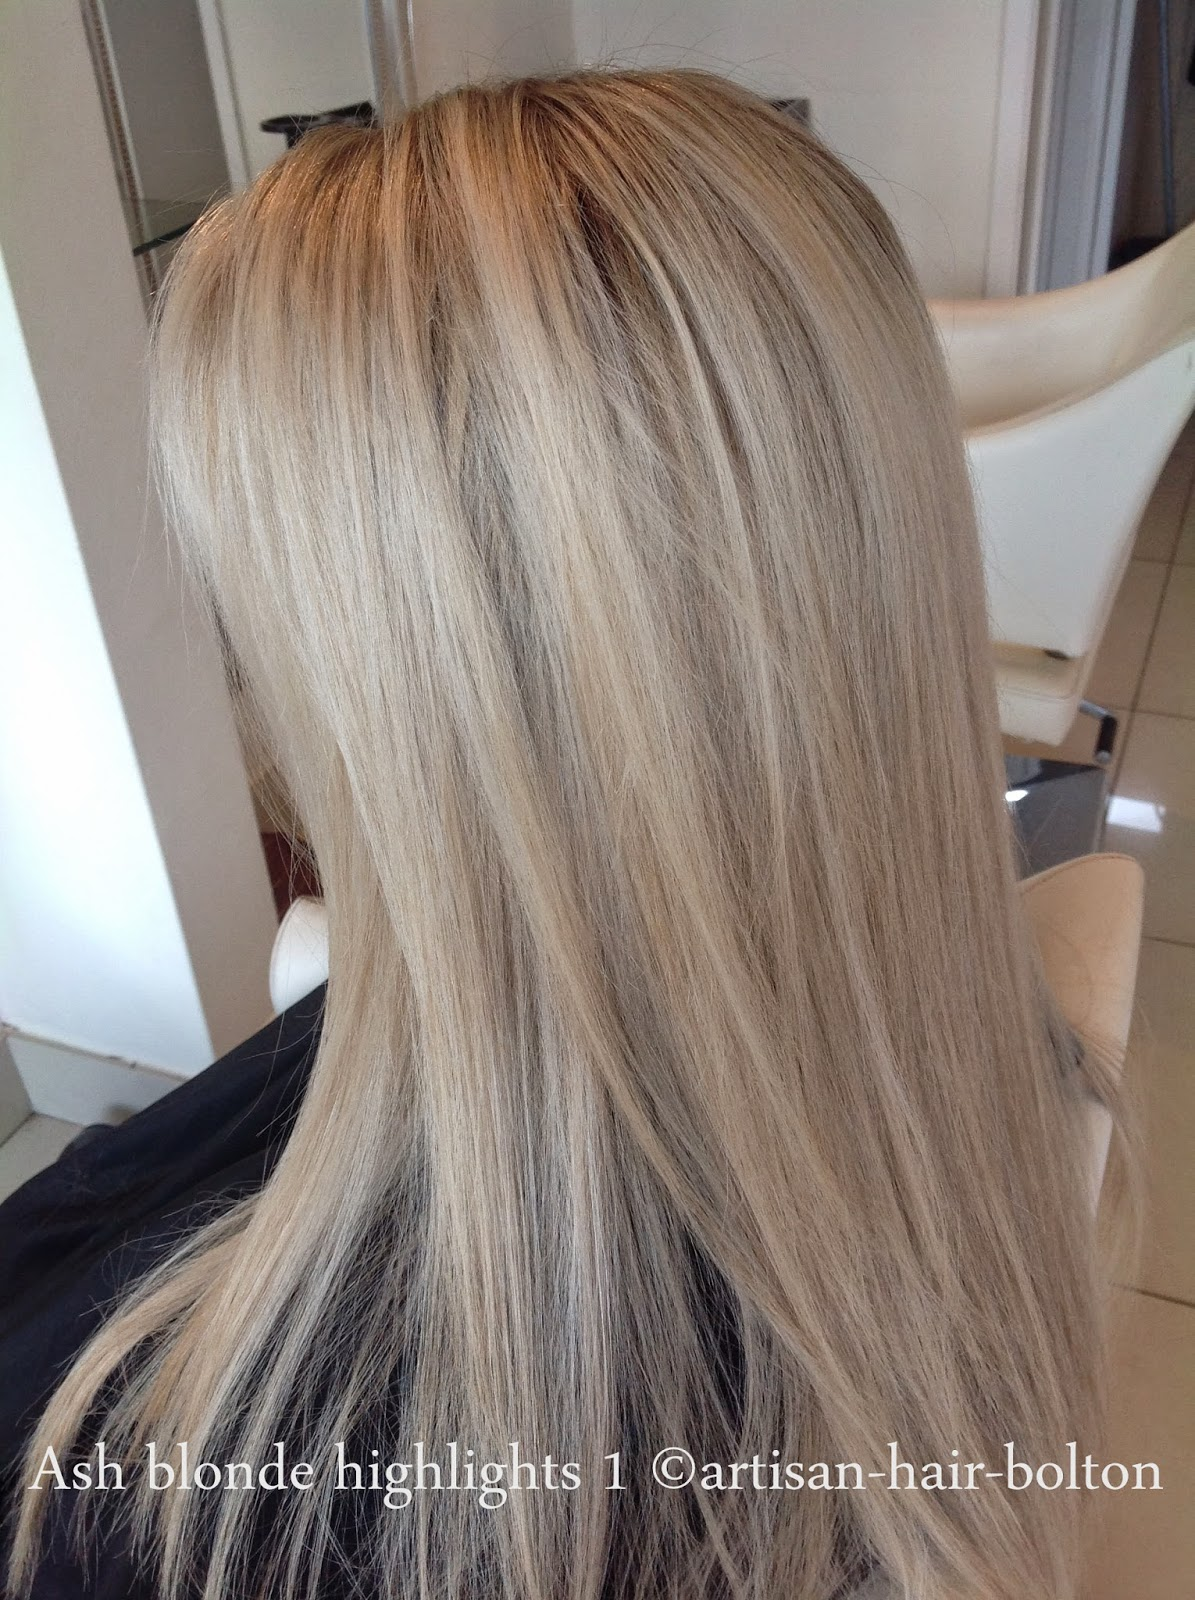 Highlights Blond Ash Blonde Hair With Blonde Highlights